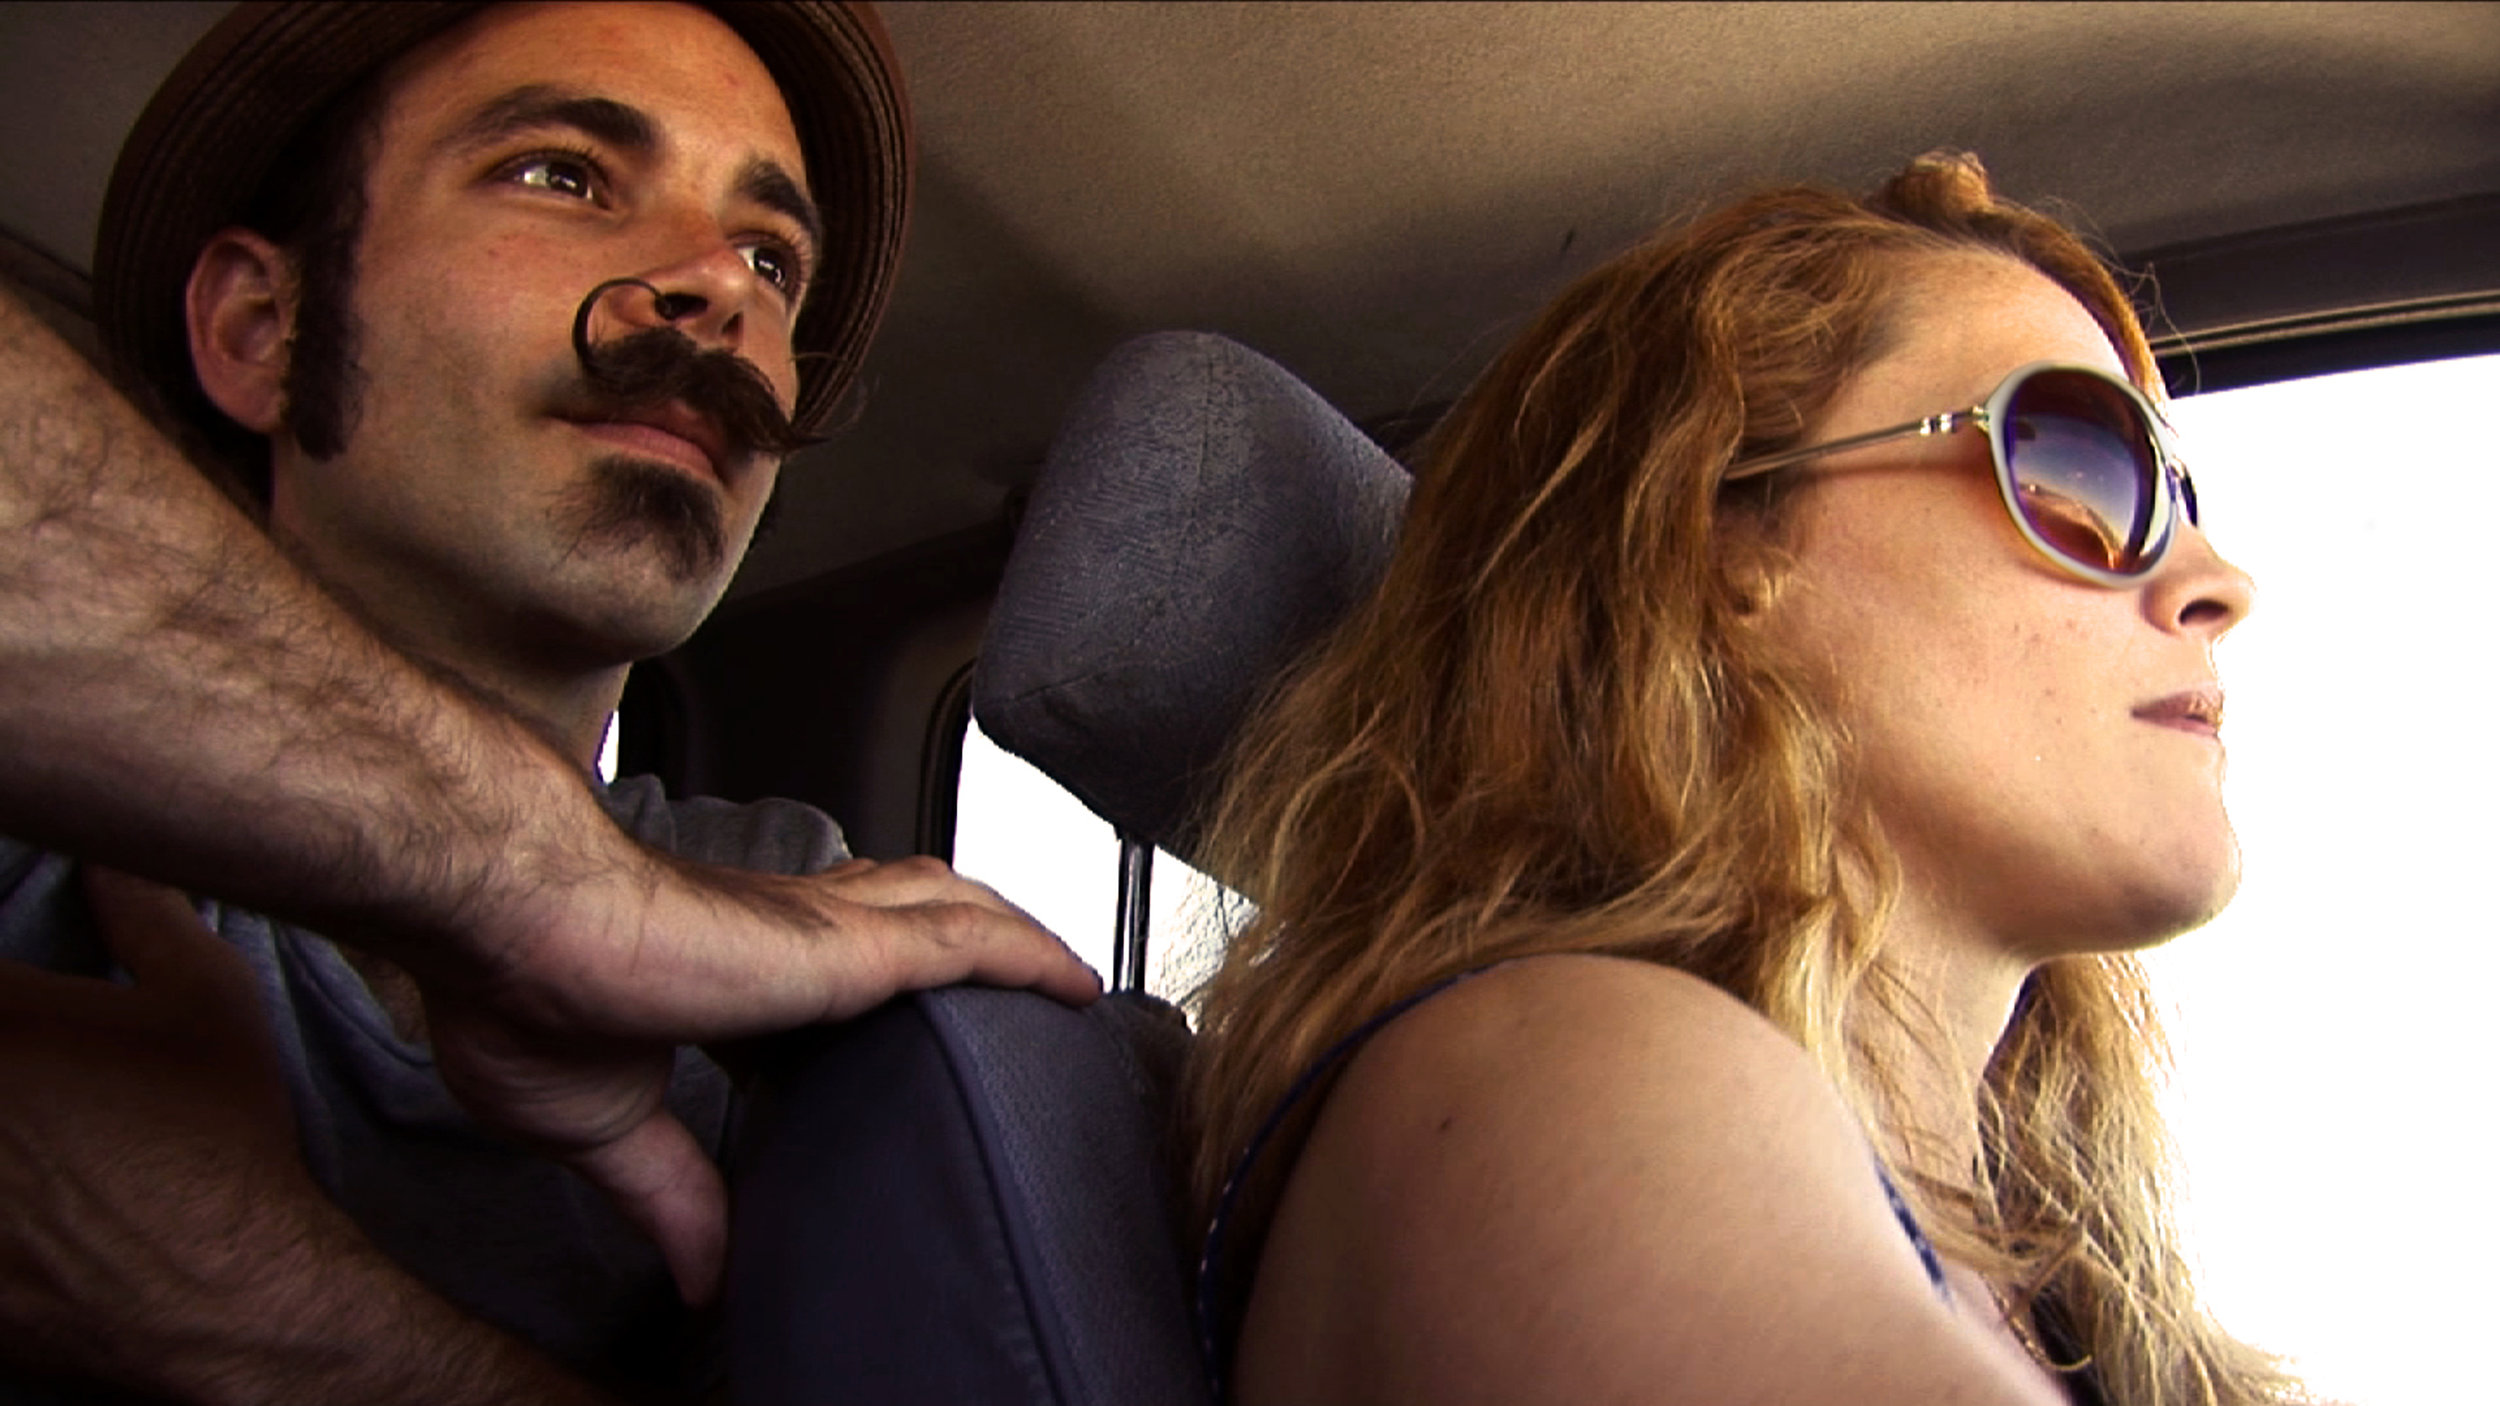 Trixie & Monkey driving home to Baltimore after a Southern tour, 2012, Film Still by Kirsten D'Andrea Hollander